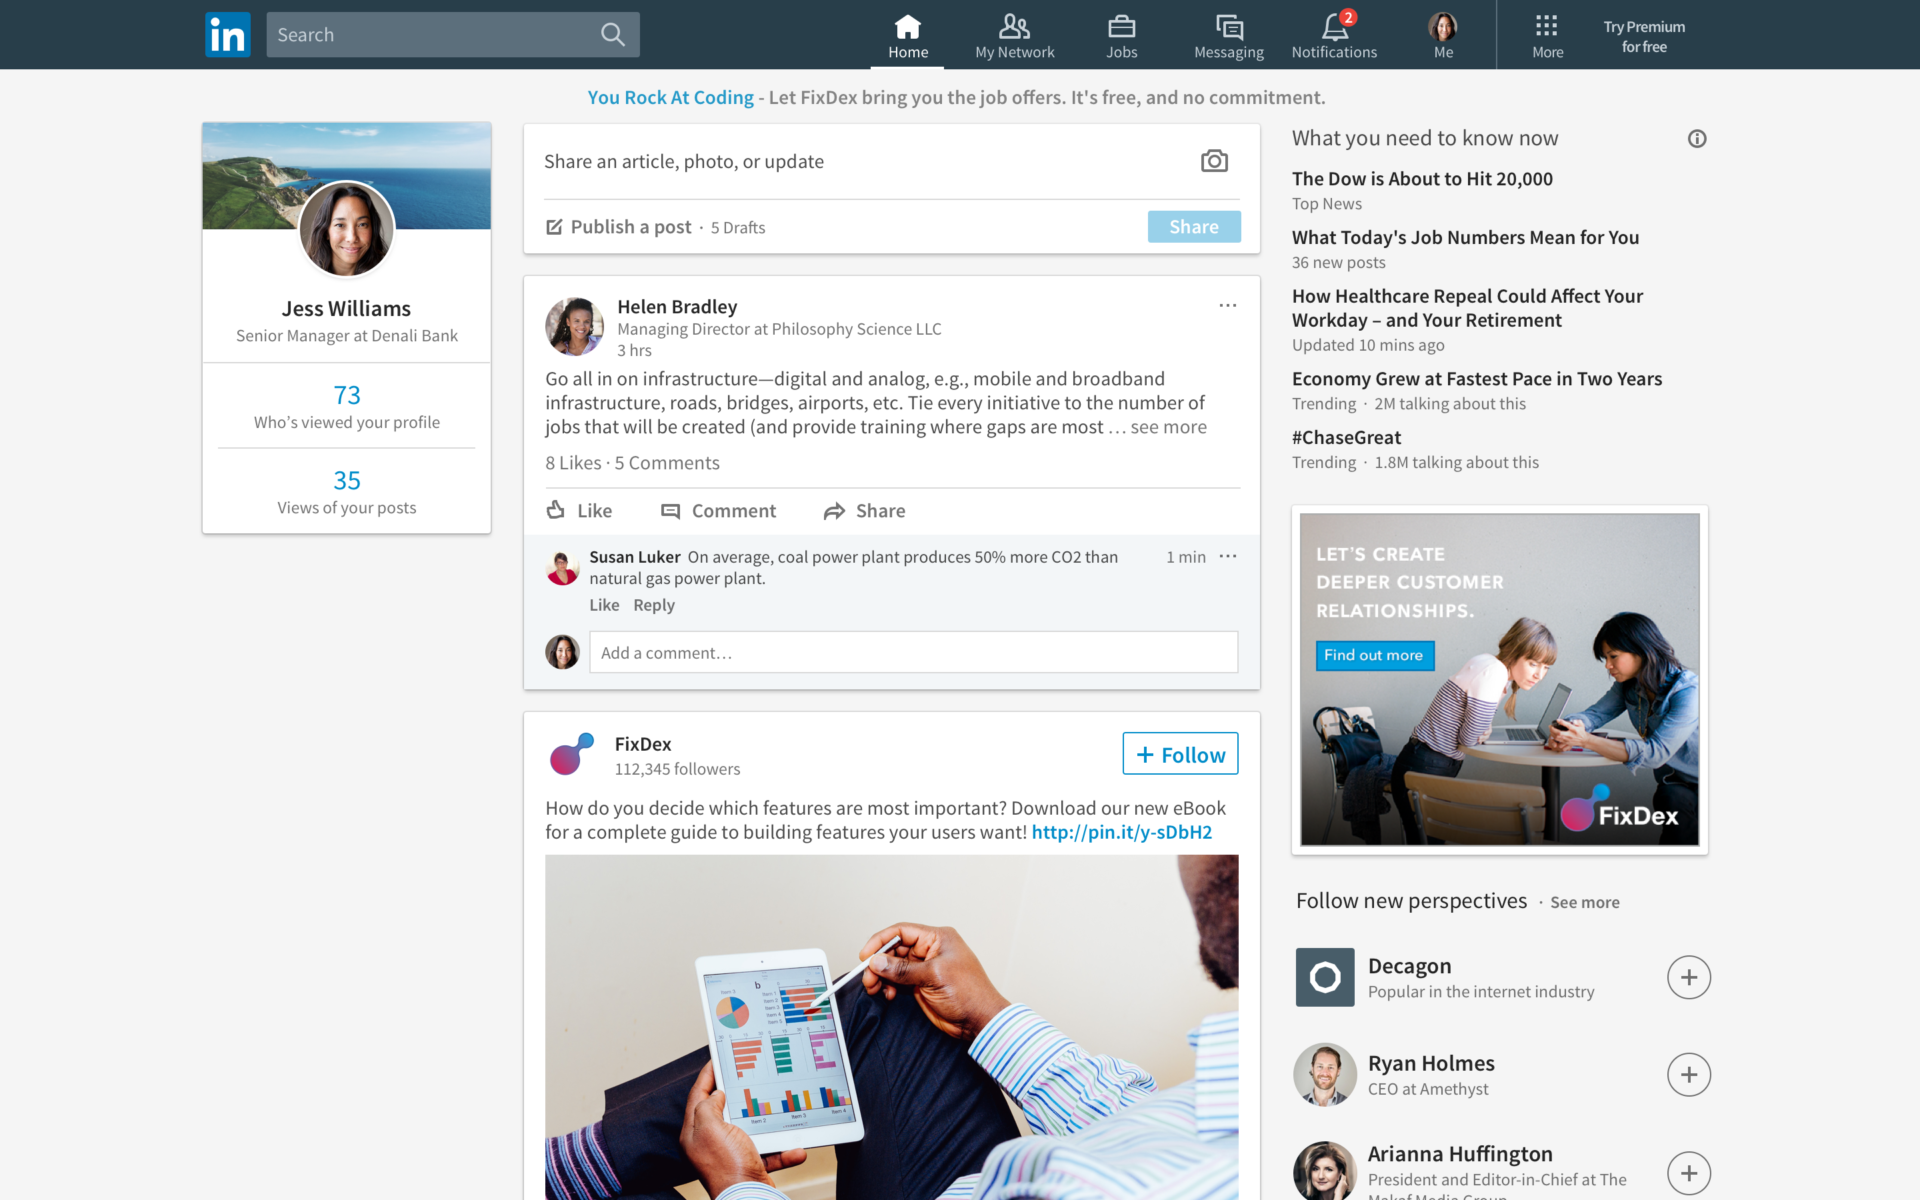 LinkedIn refreshes desktop interface, emphasizing content and conversation - LinkedIn New Feed